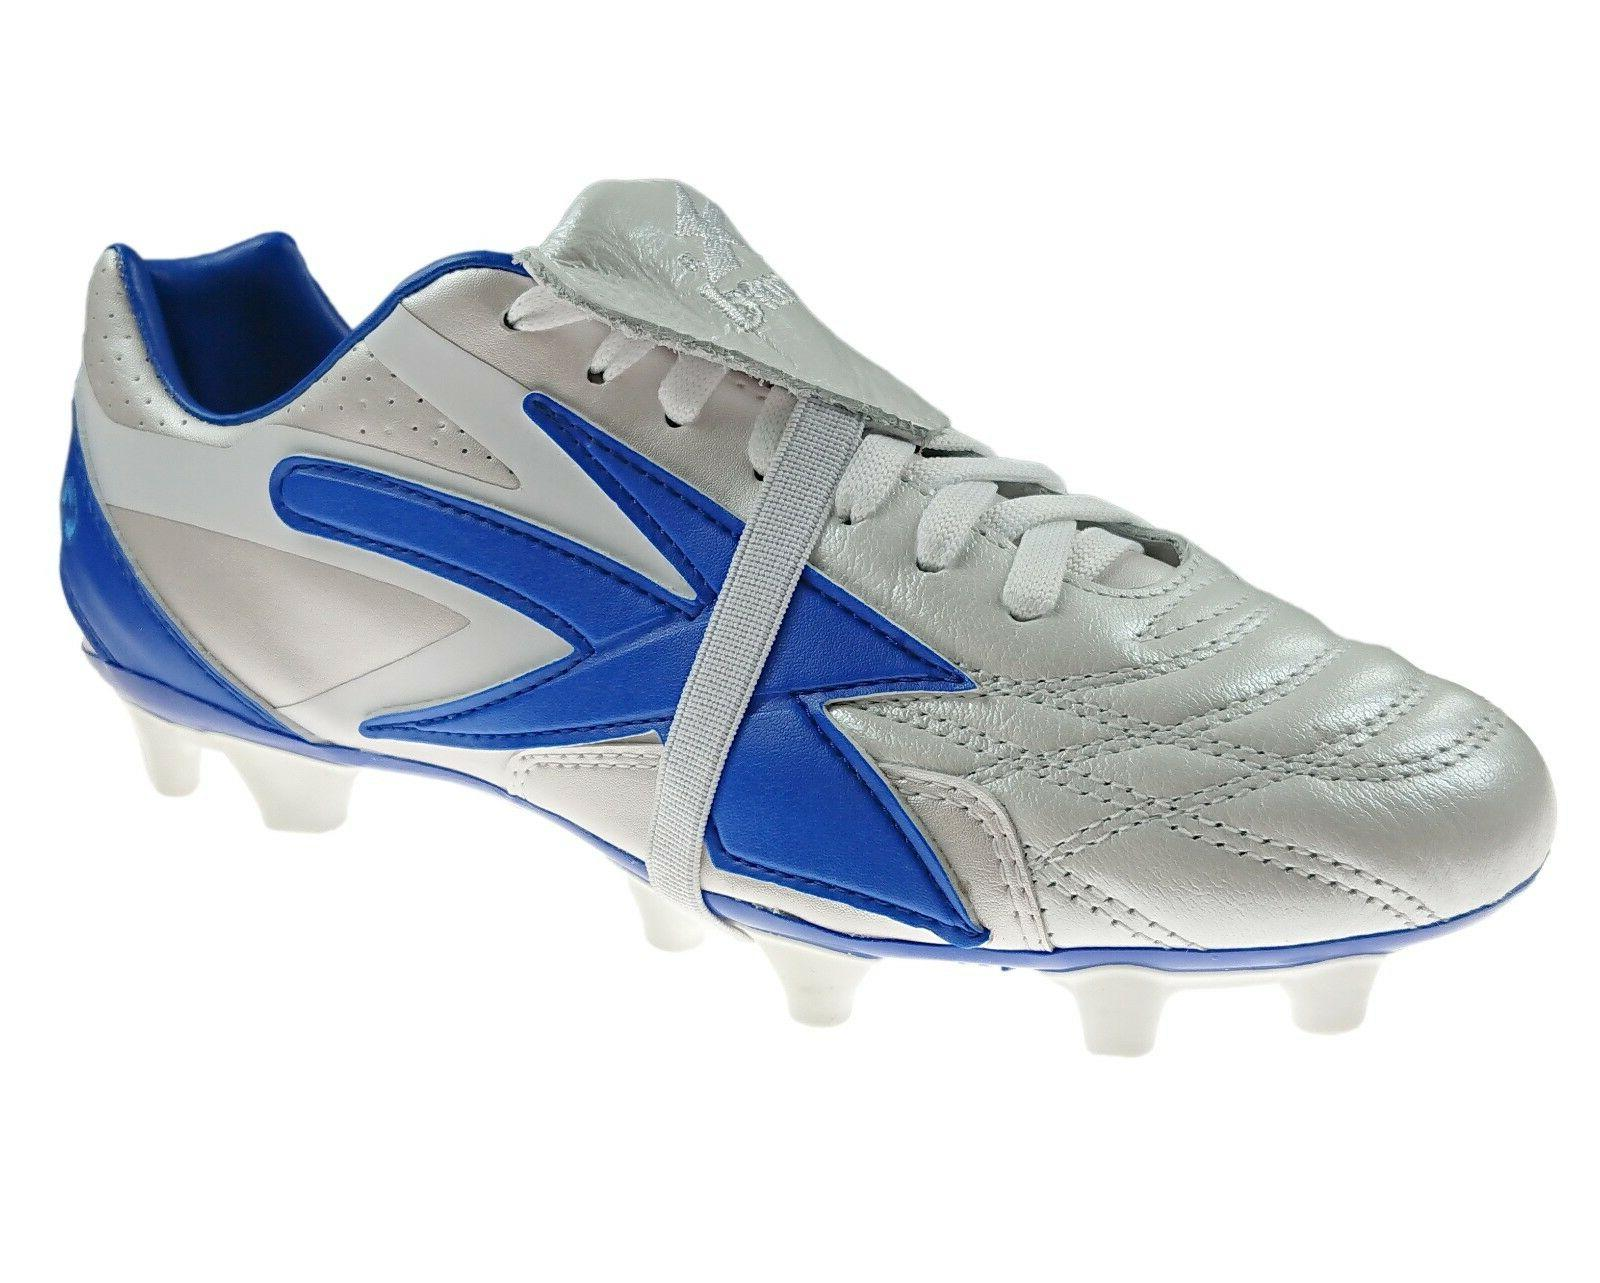 Authentic Concord Cleats Style S160XA in Mexico